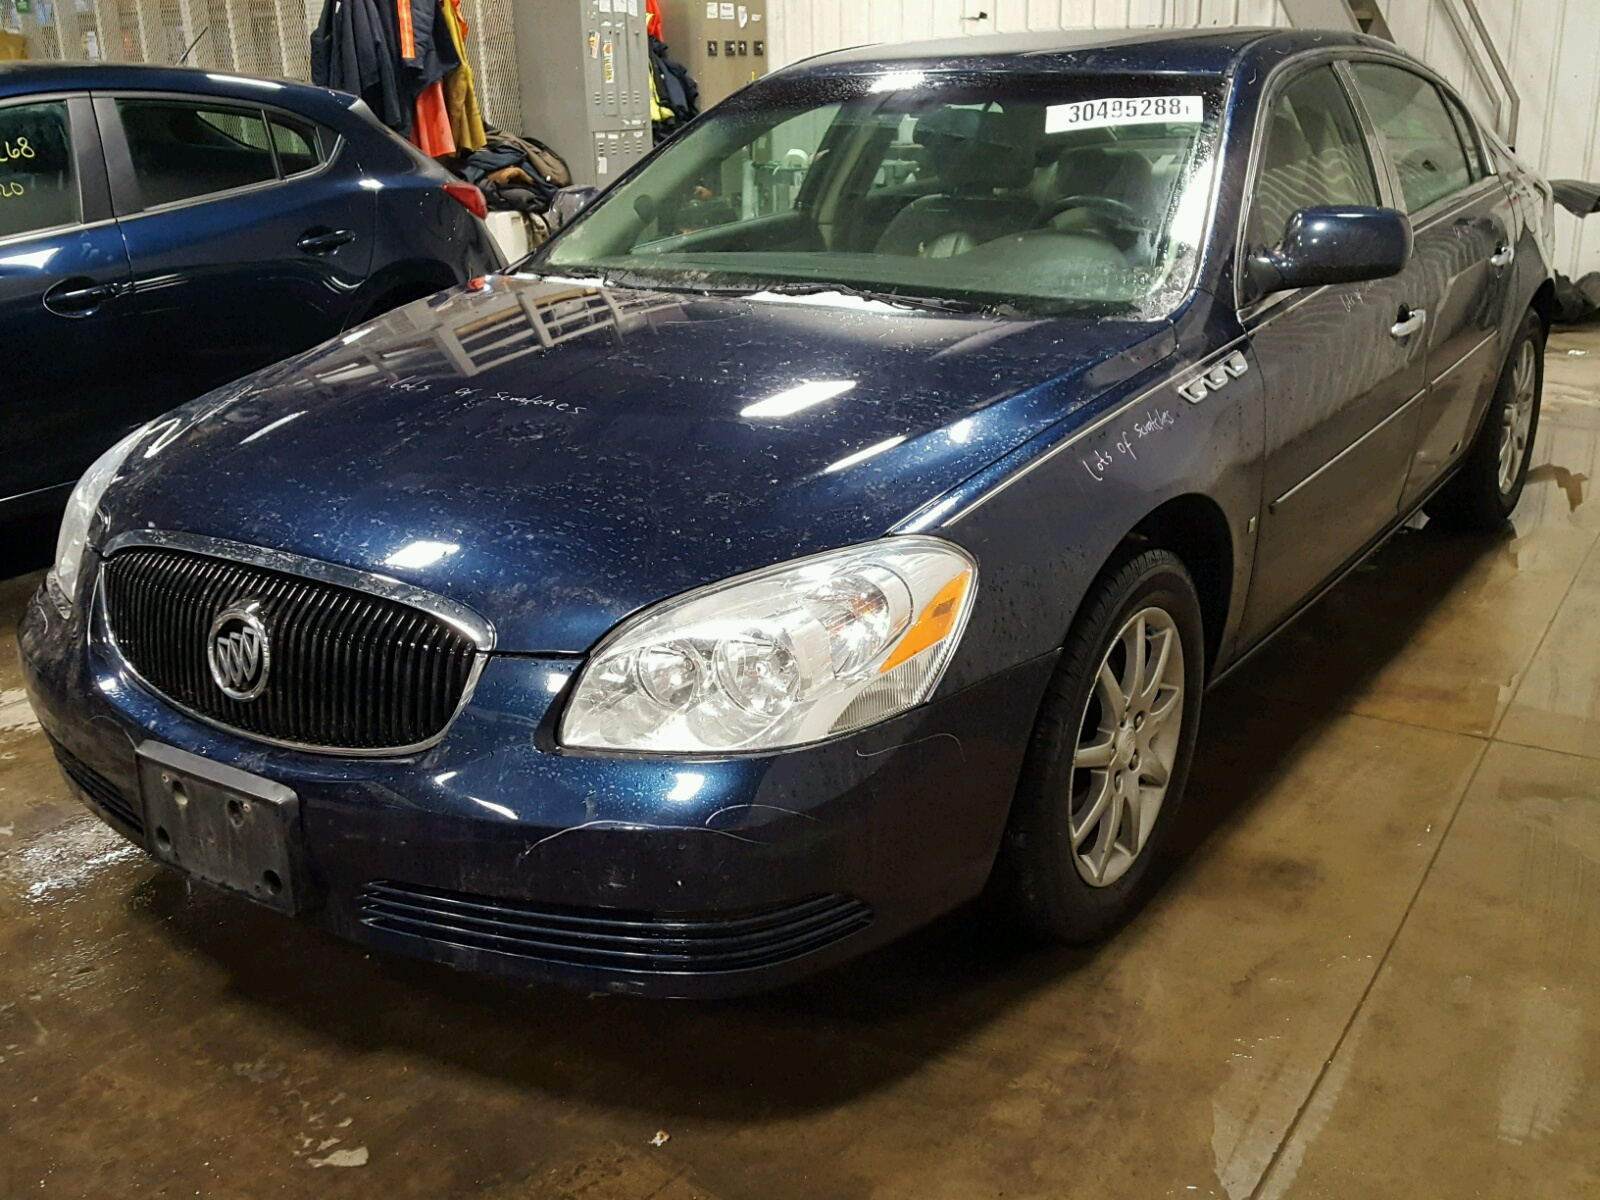 cx nc buick salvage view lucerne in auto auctions en carfinder gray on for title certificate sale of copart left lot raleigh online